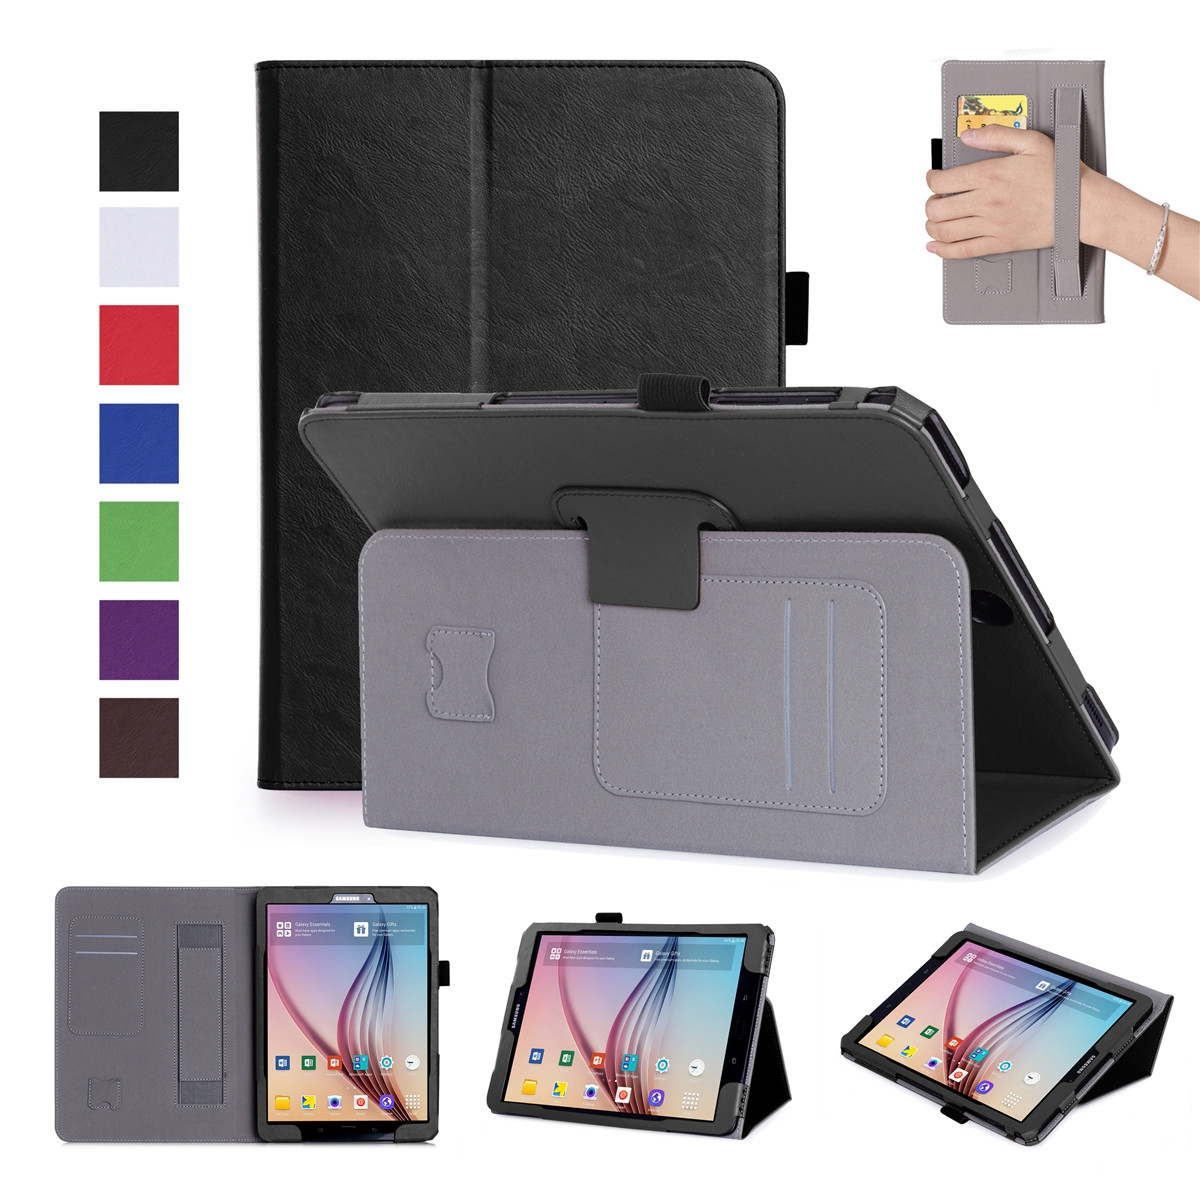 PU Leather Tablets Cases For Samsung Galaxy Tab S3 9.7 T820 T825 Tablet Case Flip Stand Cover With Pen Holder And Card Slots